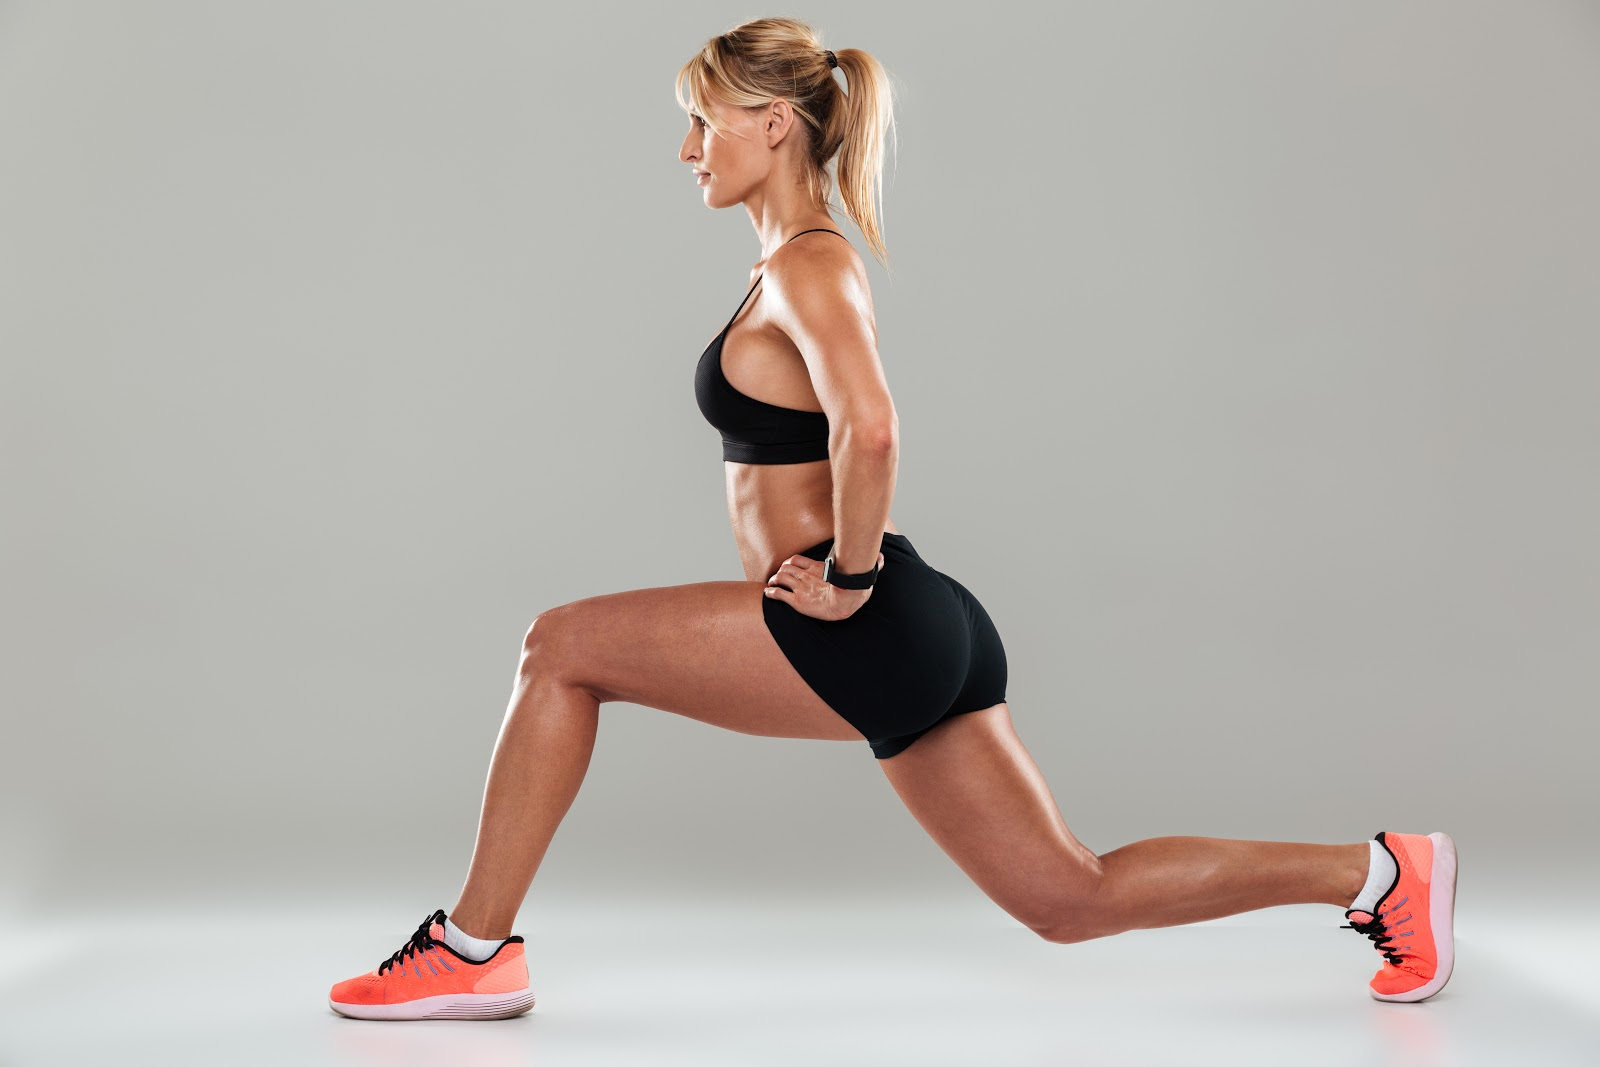 Glute Exercises for Runners: Lunges